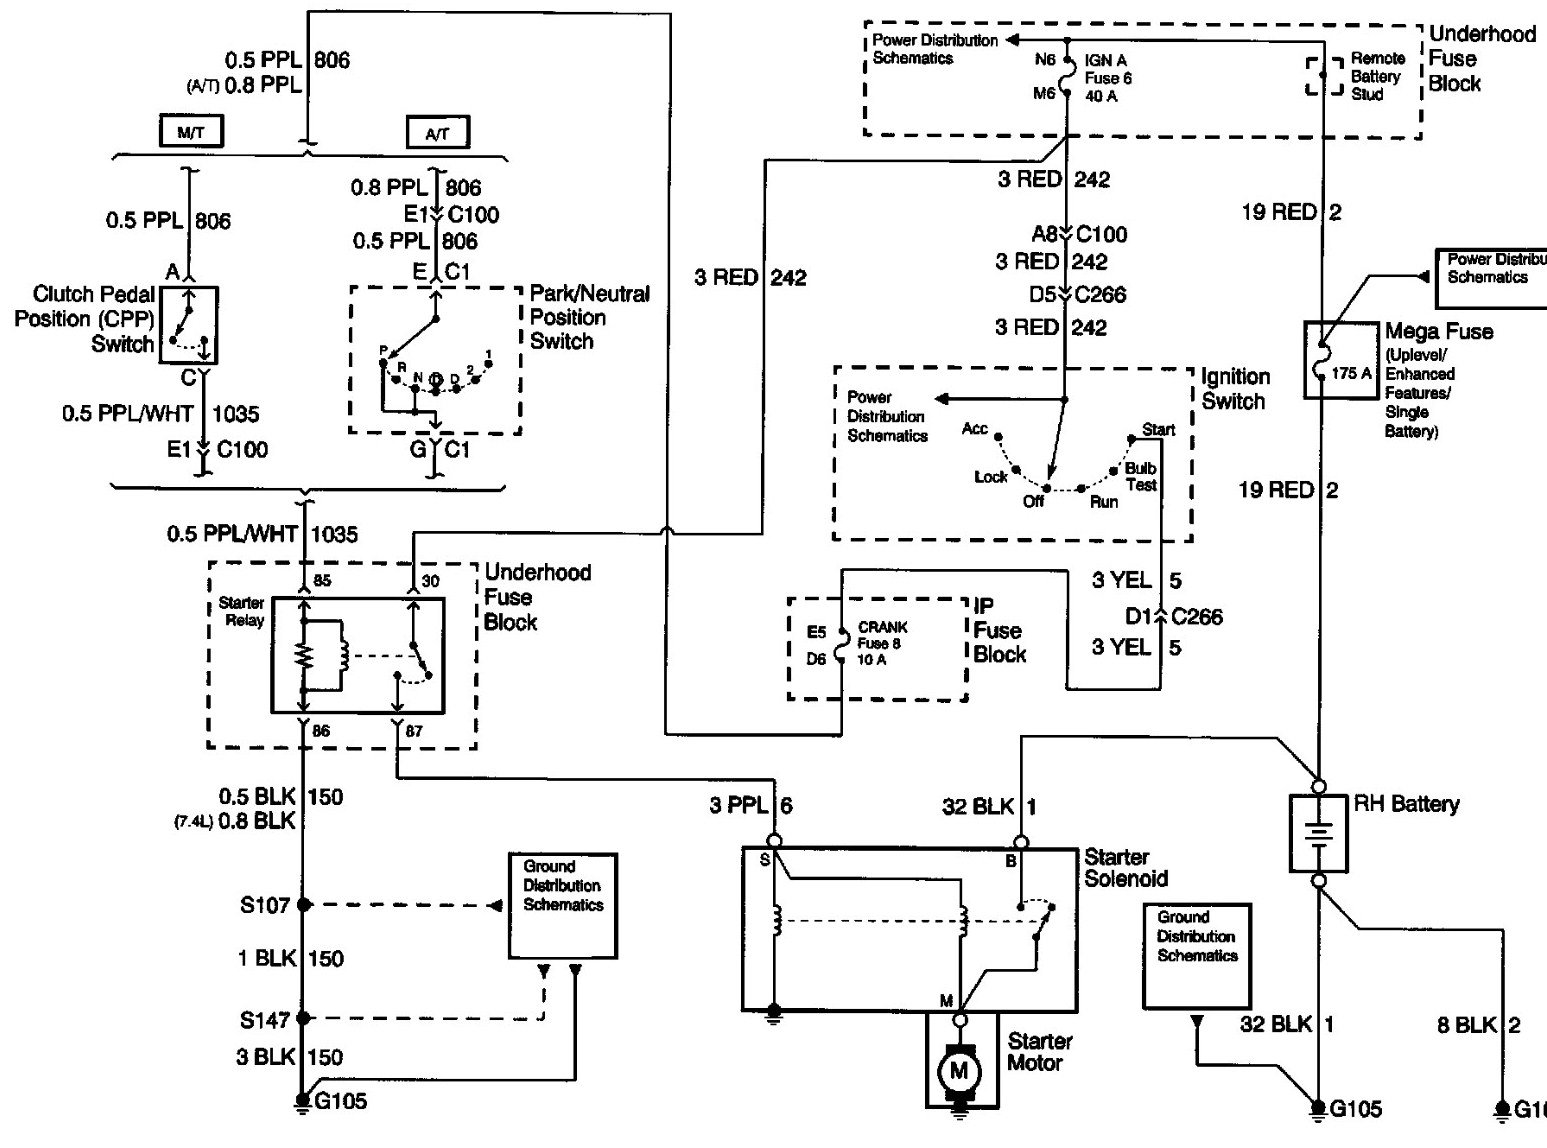 Cadillac Northstar Alternator Wiring Diagram Libraries Fuse Box 2002 North Star 2003 Escalade Data